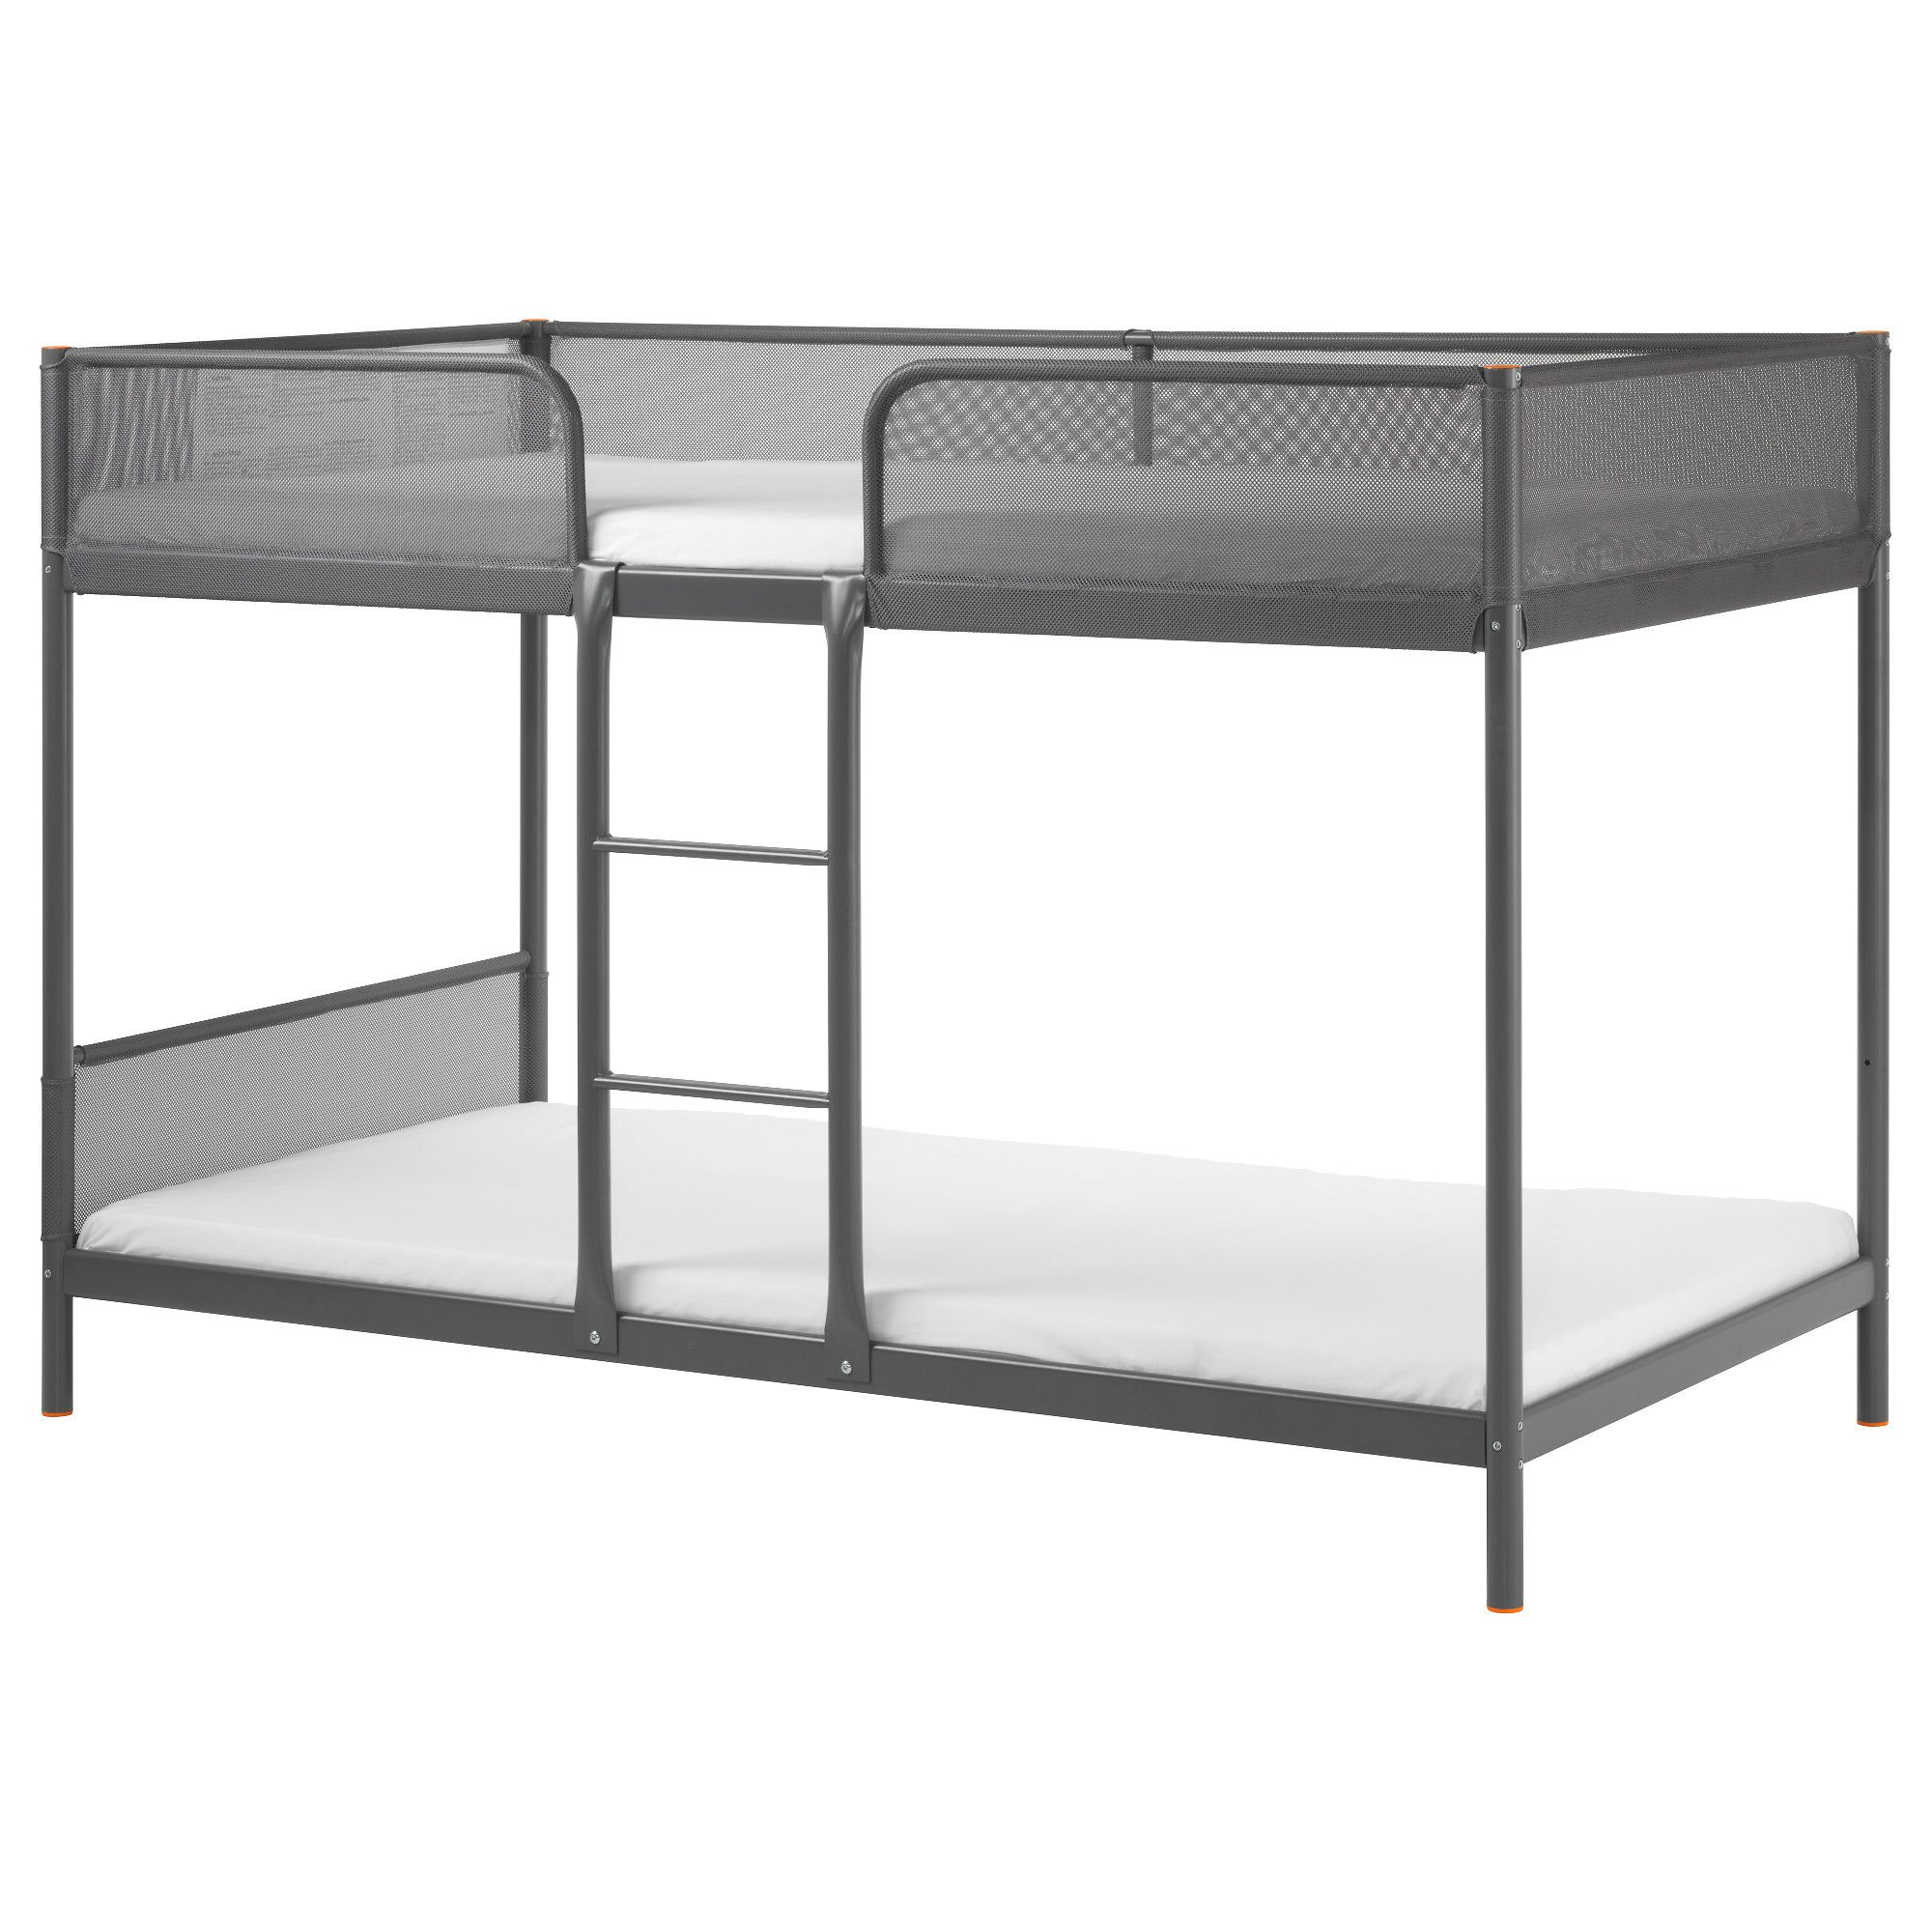 Tuffing Bunk Bed Frame Dark Gray Twin Ikea Bunk Bed Ikea Bed